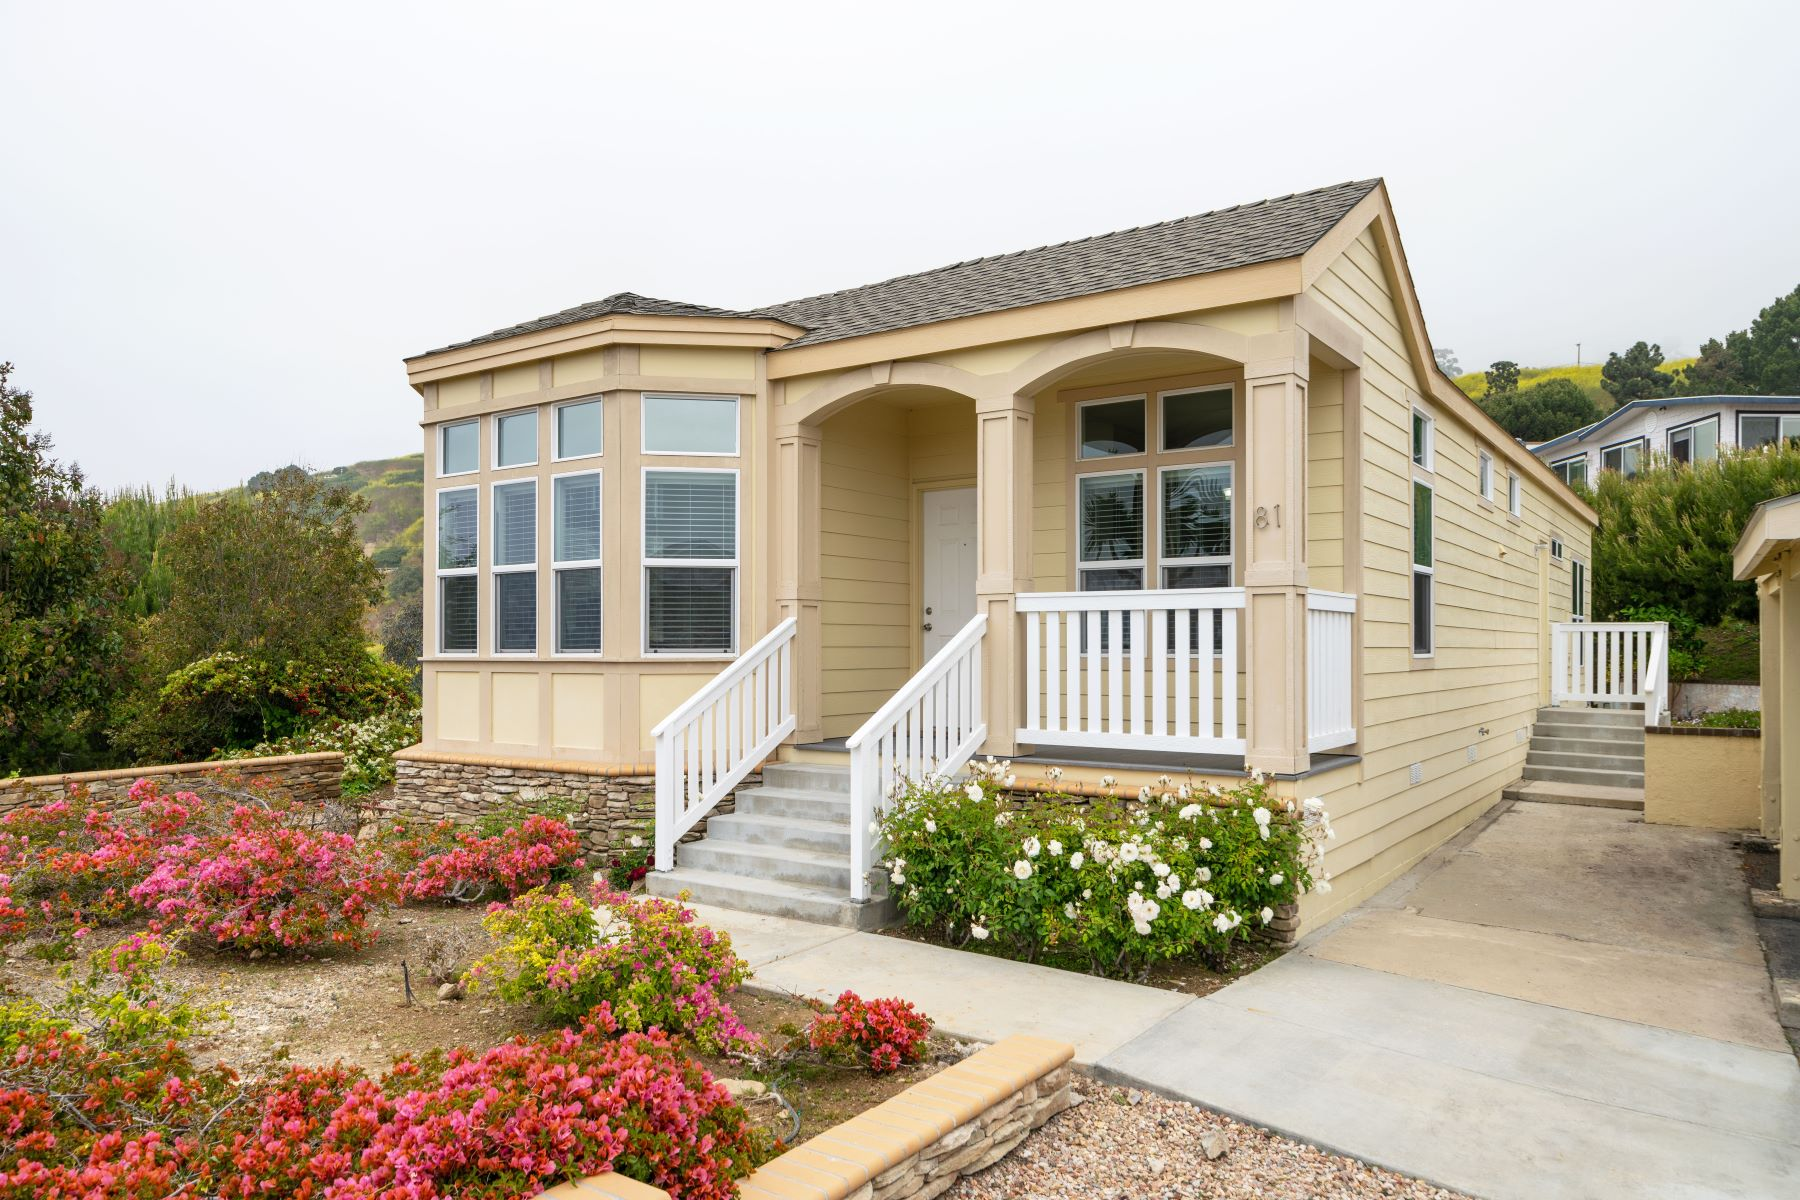 Other Residential Homes for Active at 2275 25th Street #81, San Pedro, CA 90732 2275 25th Street #81 San Pedro, California 90732 United States